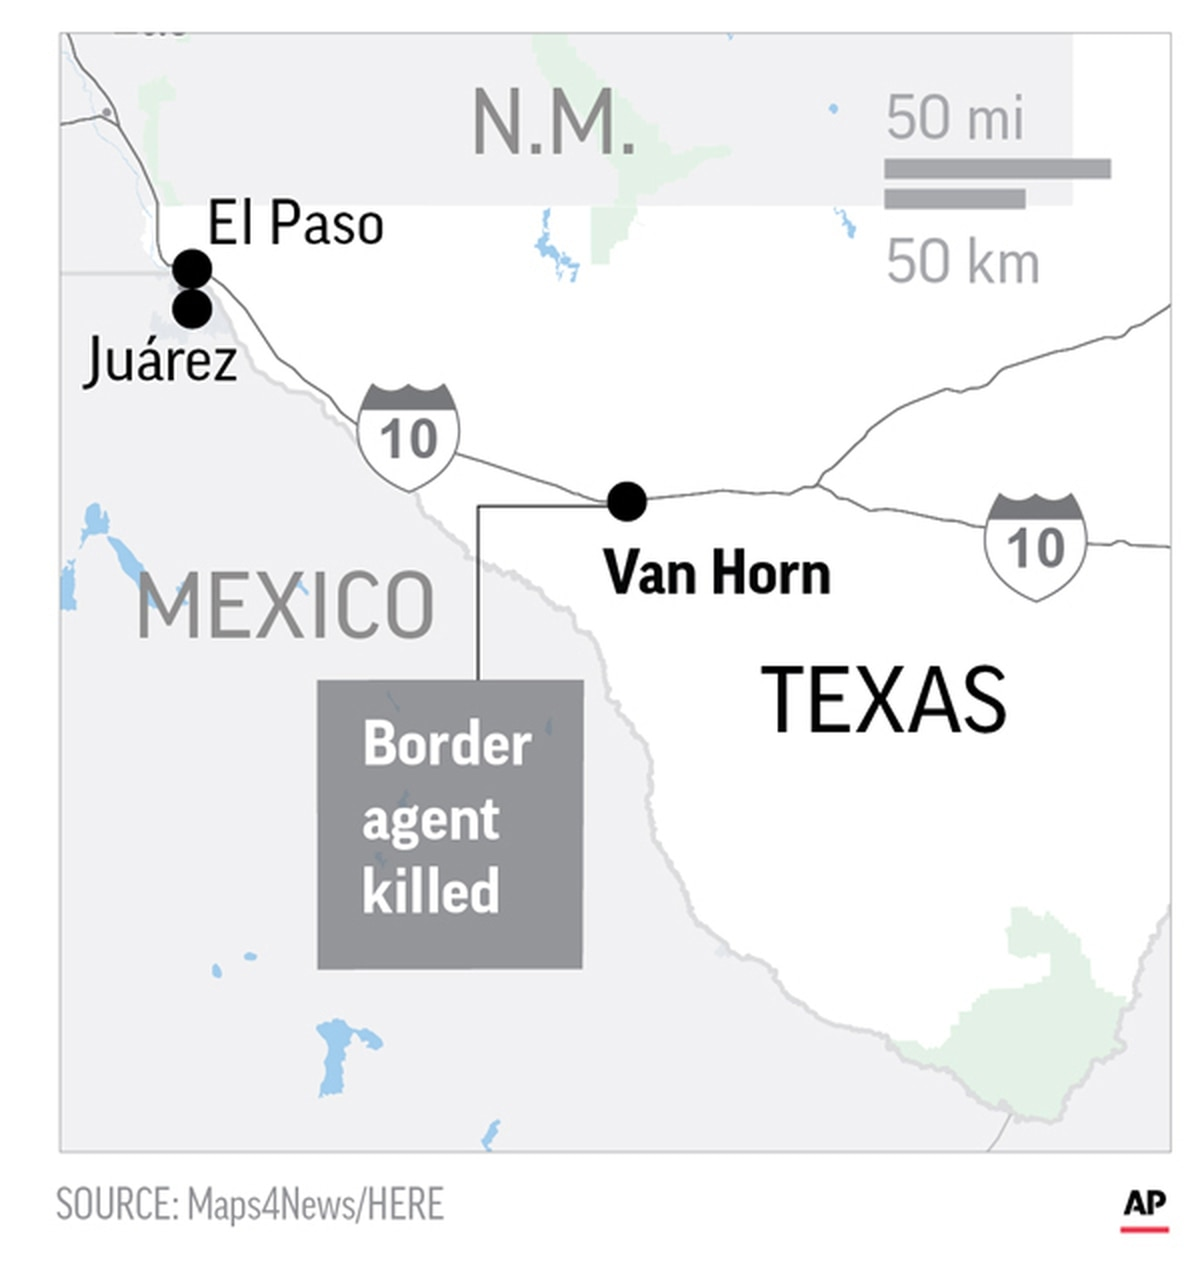 Authorities believe border agent may have fallen to his death